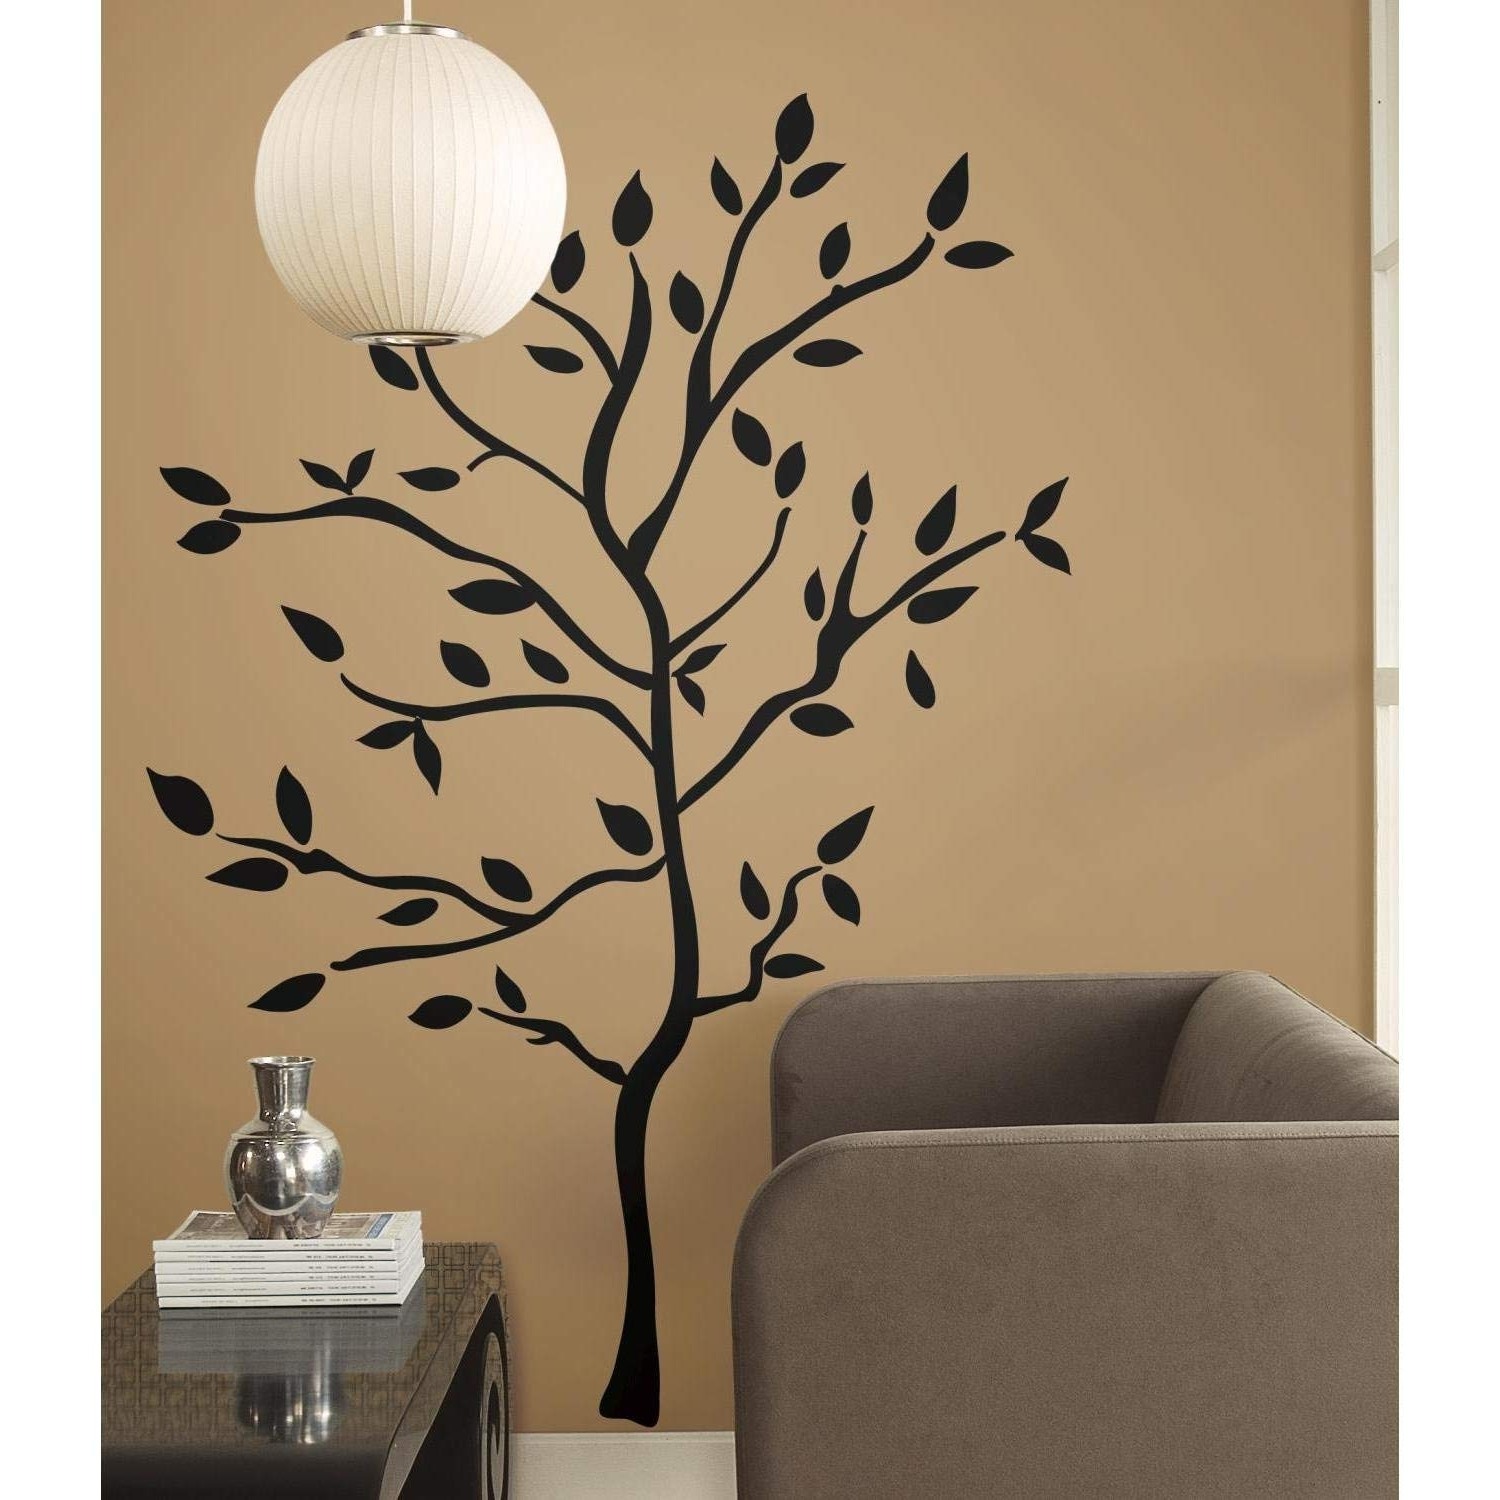 Stick On Wall Art Within Current Roommates Rmk1317Gm Tree Branches Peel & Stick Wall Decals – Wall (View 10 of 15)